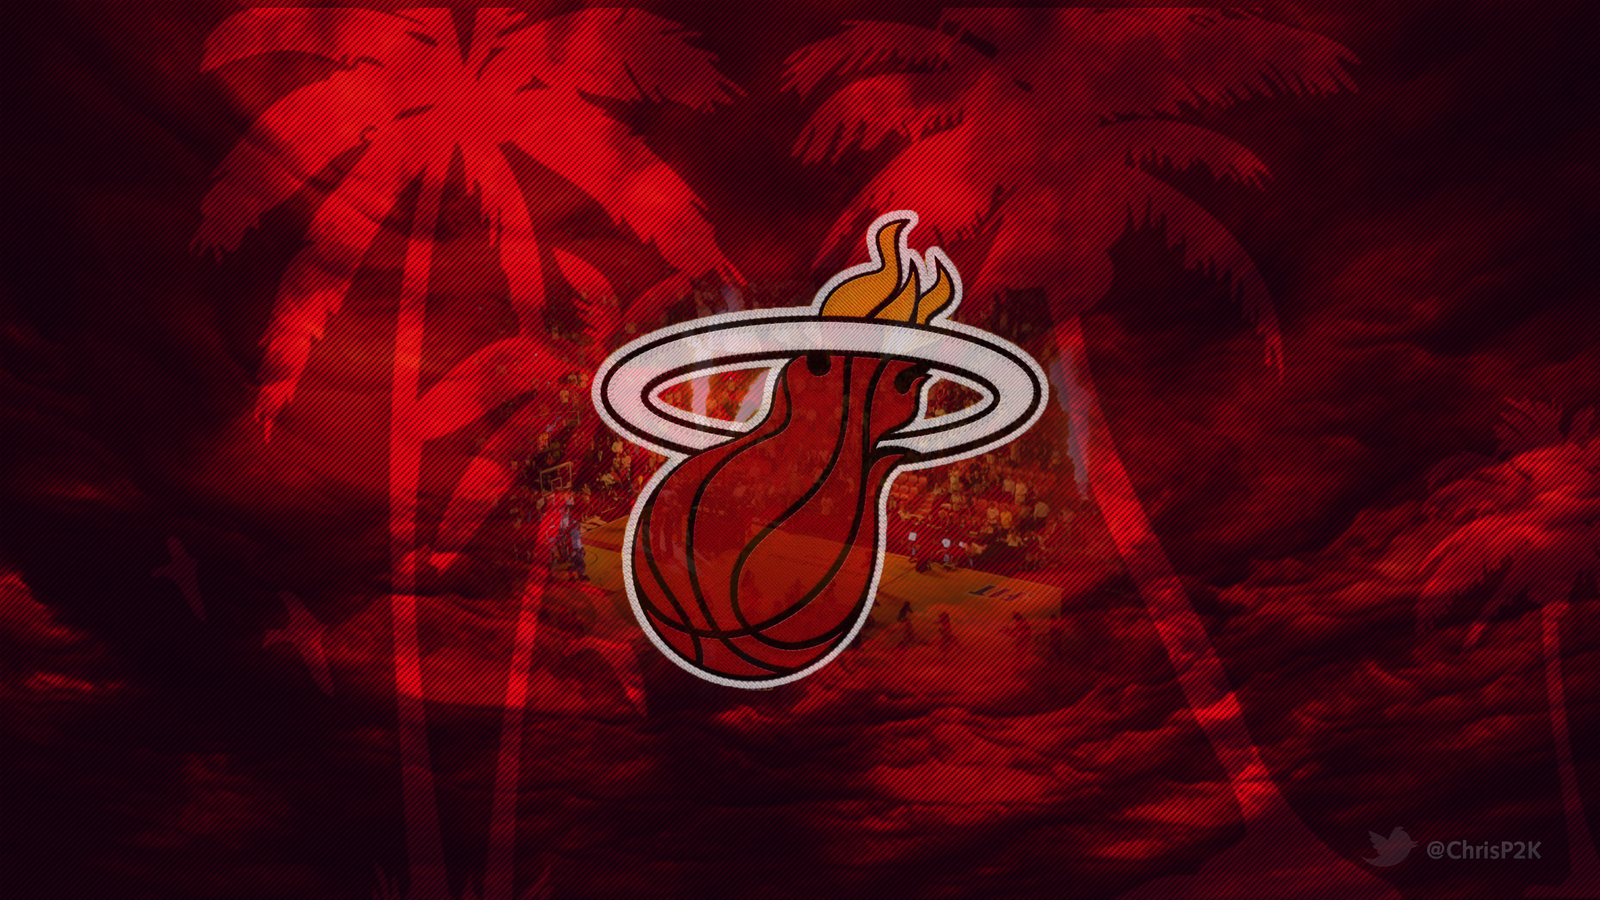 Miami Heat Wallpapers Top Free Miami Heat Backgrounds Wallpaperaccess